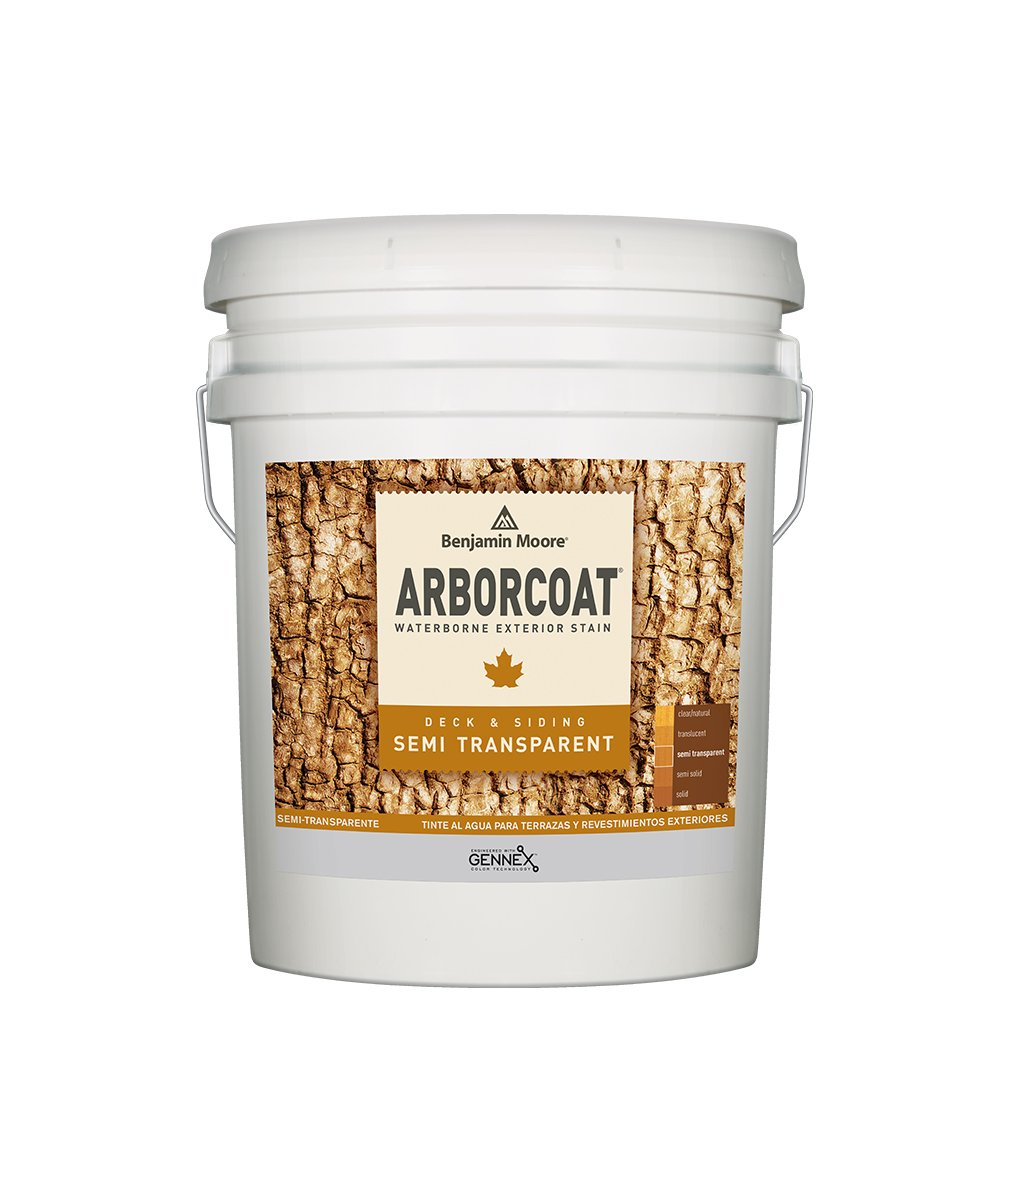 Arborcoat Semi-Transparent 5 Gallon Pail, available at Catalina Paints in CA.